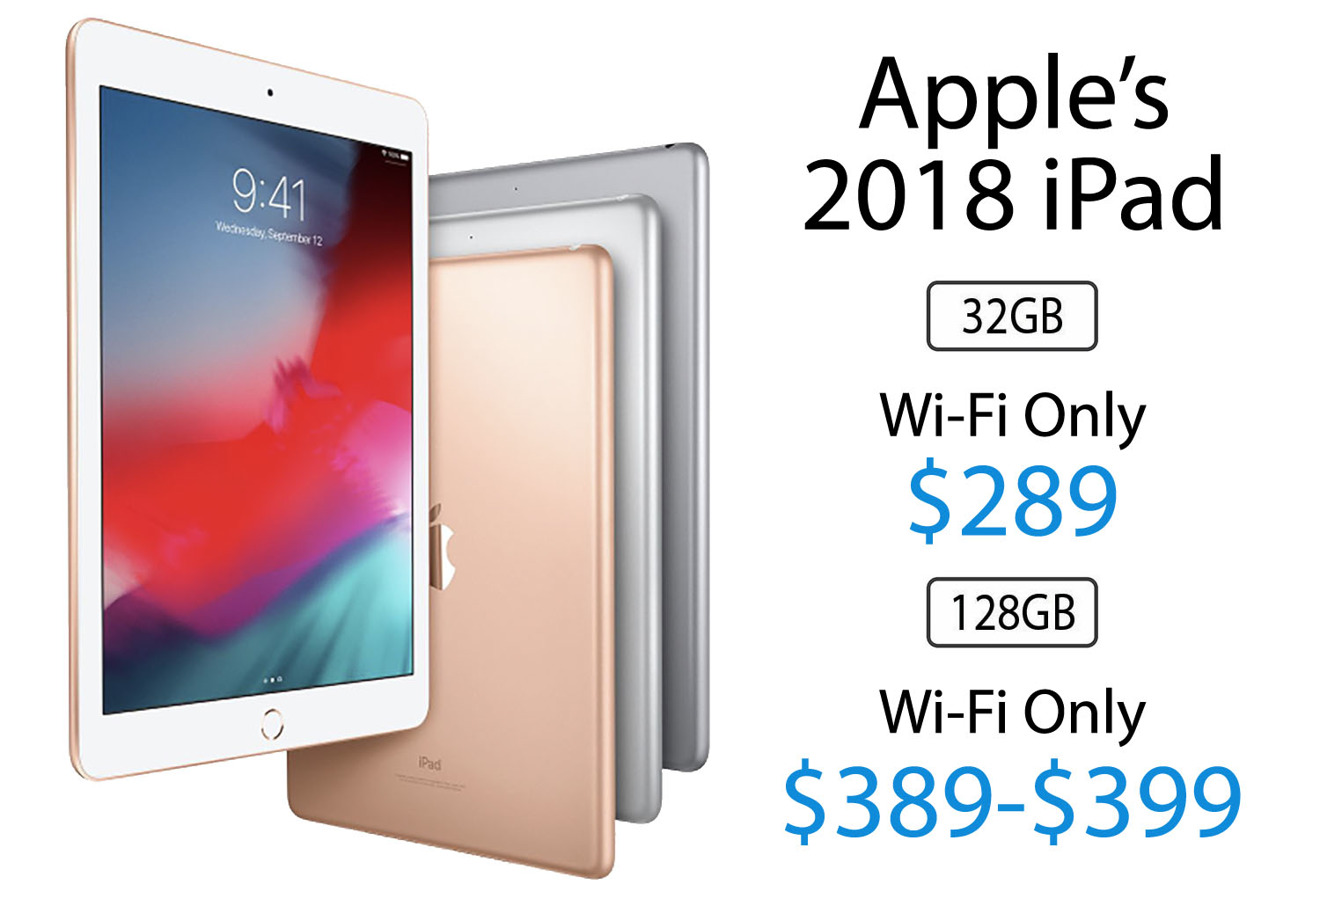 Amazon has 2018 iPads on sale for $289, plus $659 iPhone X devices at Woot